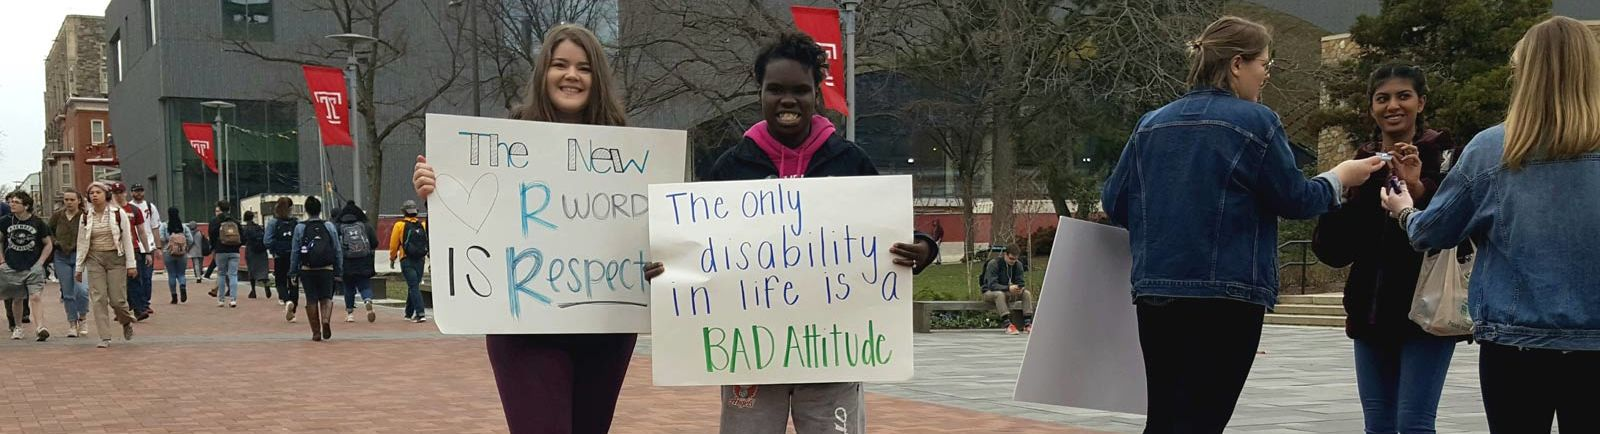 Temple students hold posters about the R-Word Campaign on campus at the bell tower